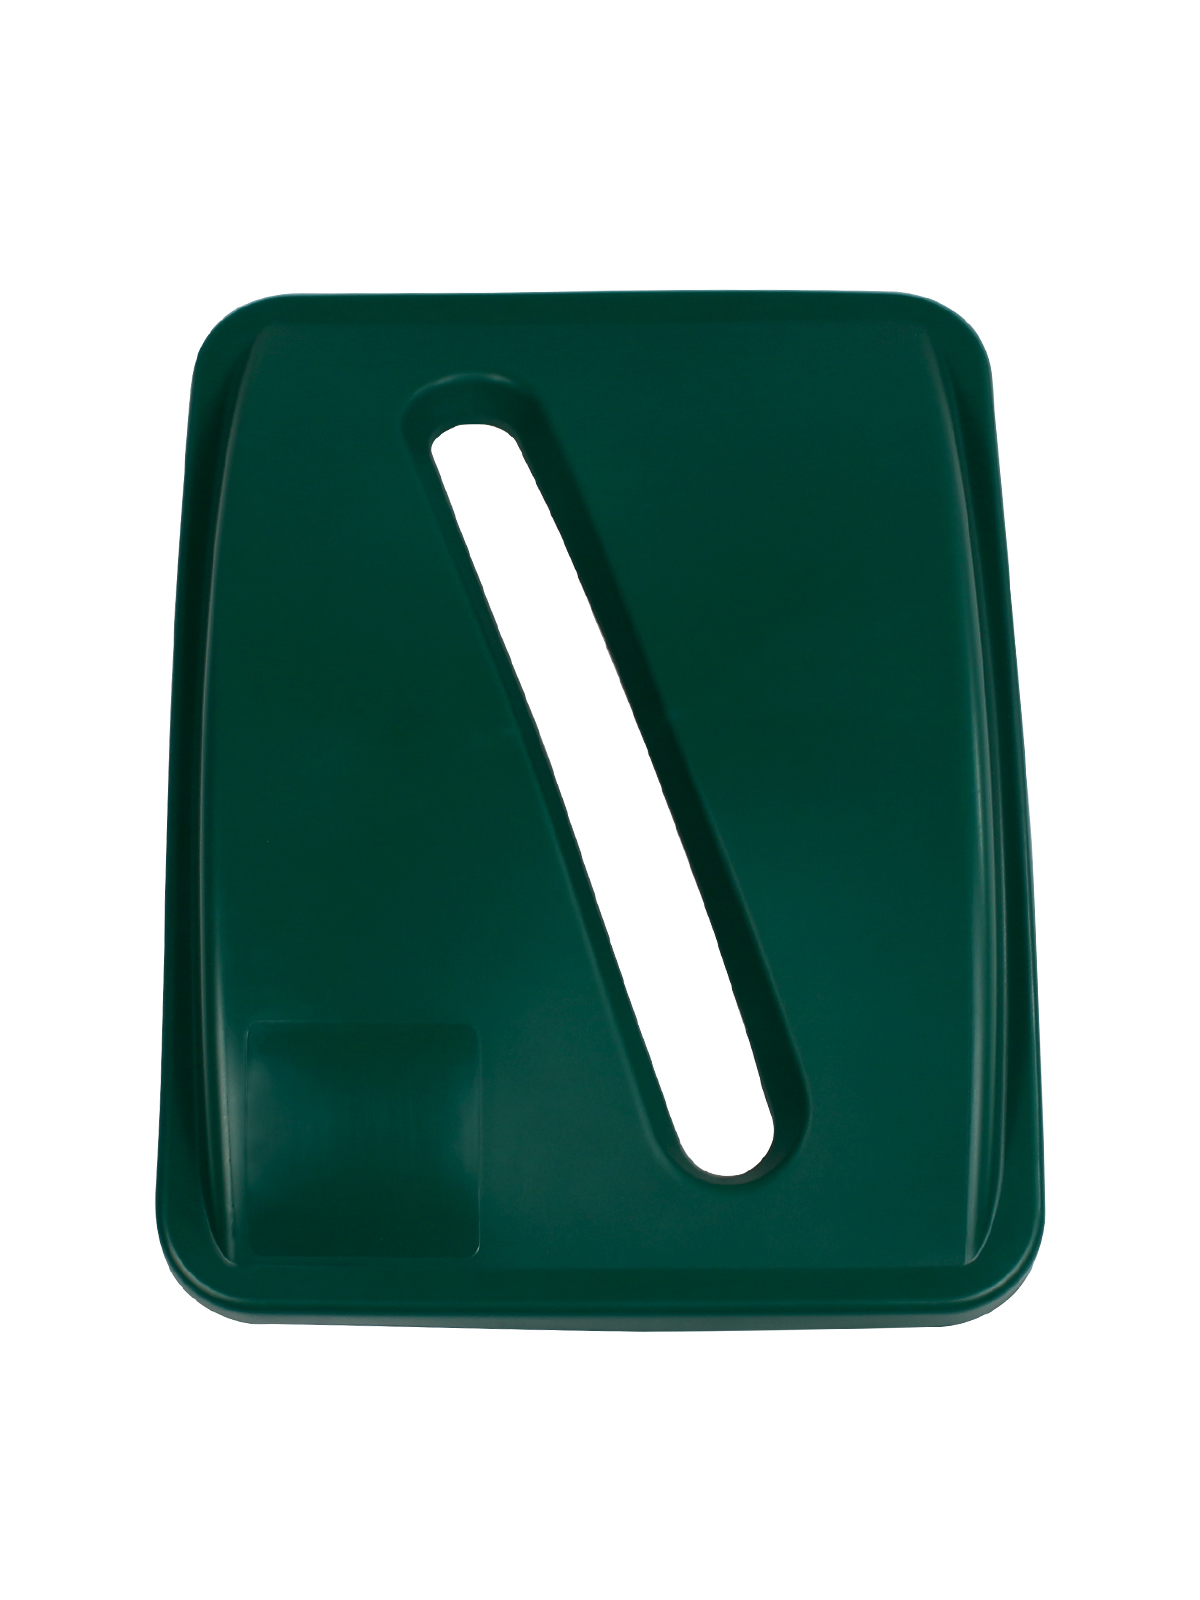 WASTE WATCHER XL - Lid - Slot - Dark Green